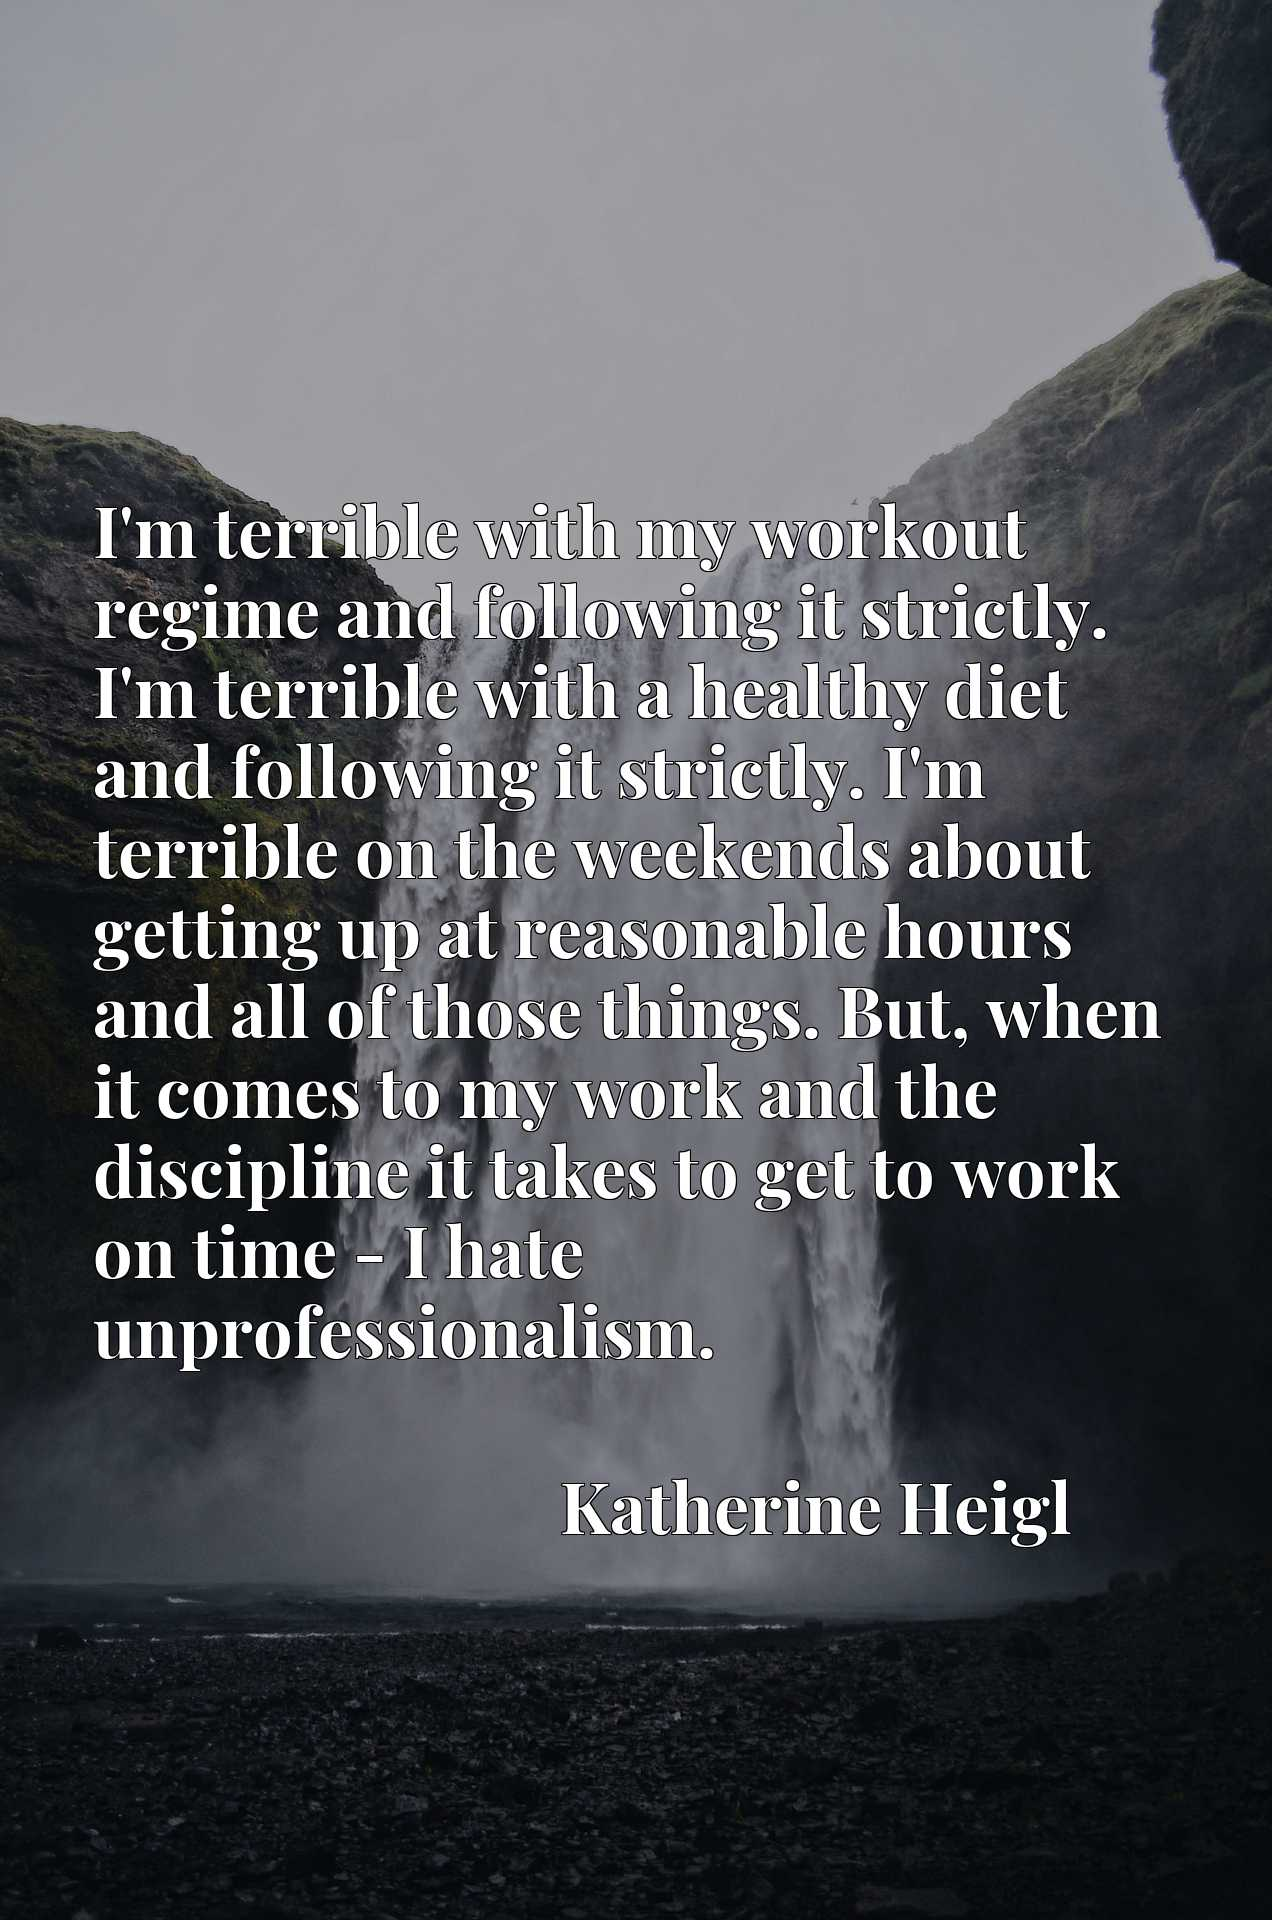 I'm terrible with my workout regime and following it strictly. I'm terrible with a healthy diet and following it strictly. I'm terrible on the weekends about getting up at reasonable hours and all of those things. But, when it comes to my work and the discipline it takes to get to work on time - I hate unprofessionalism.